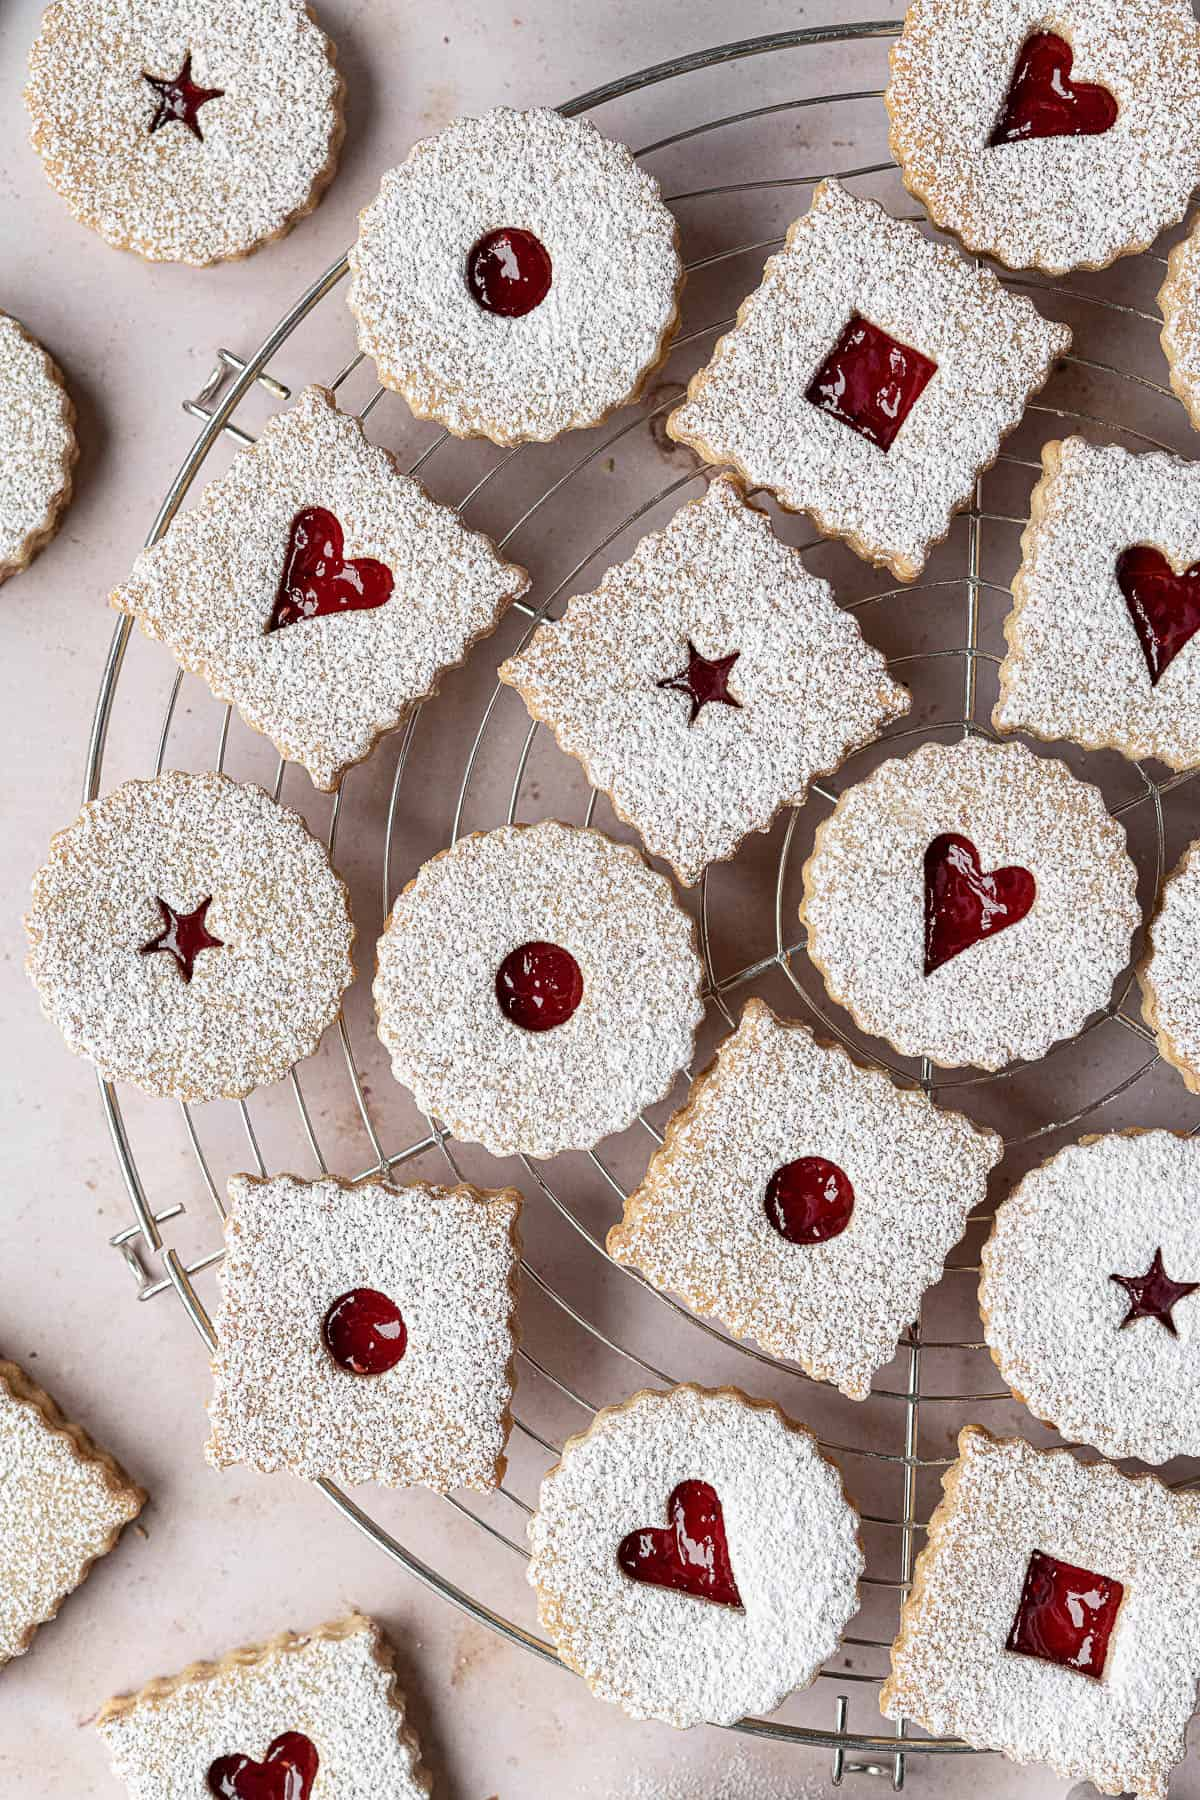 Linzer cookies on a wire cooling rack.